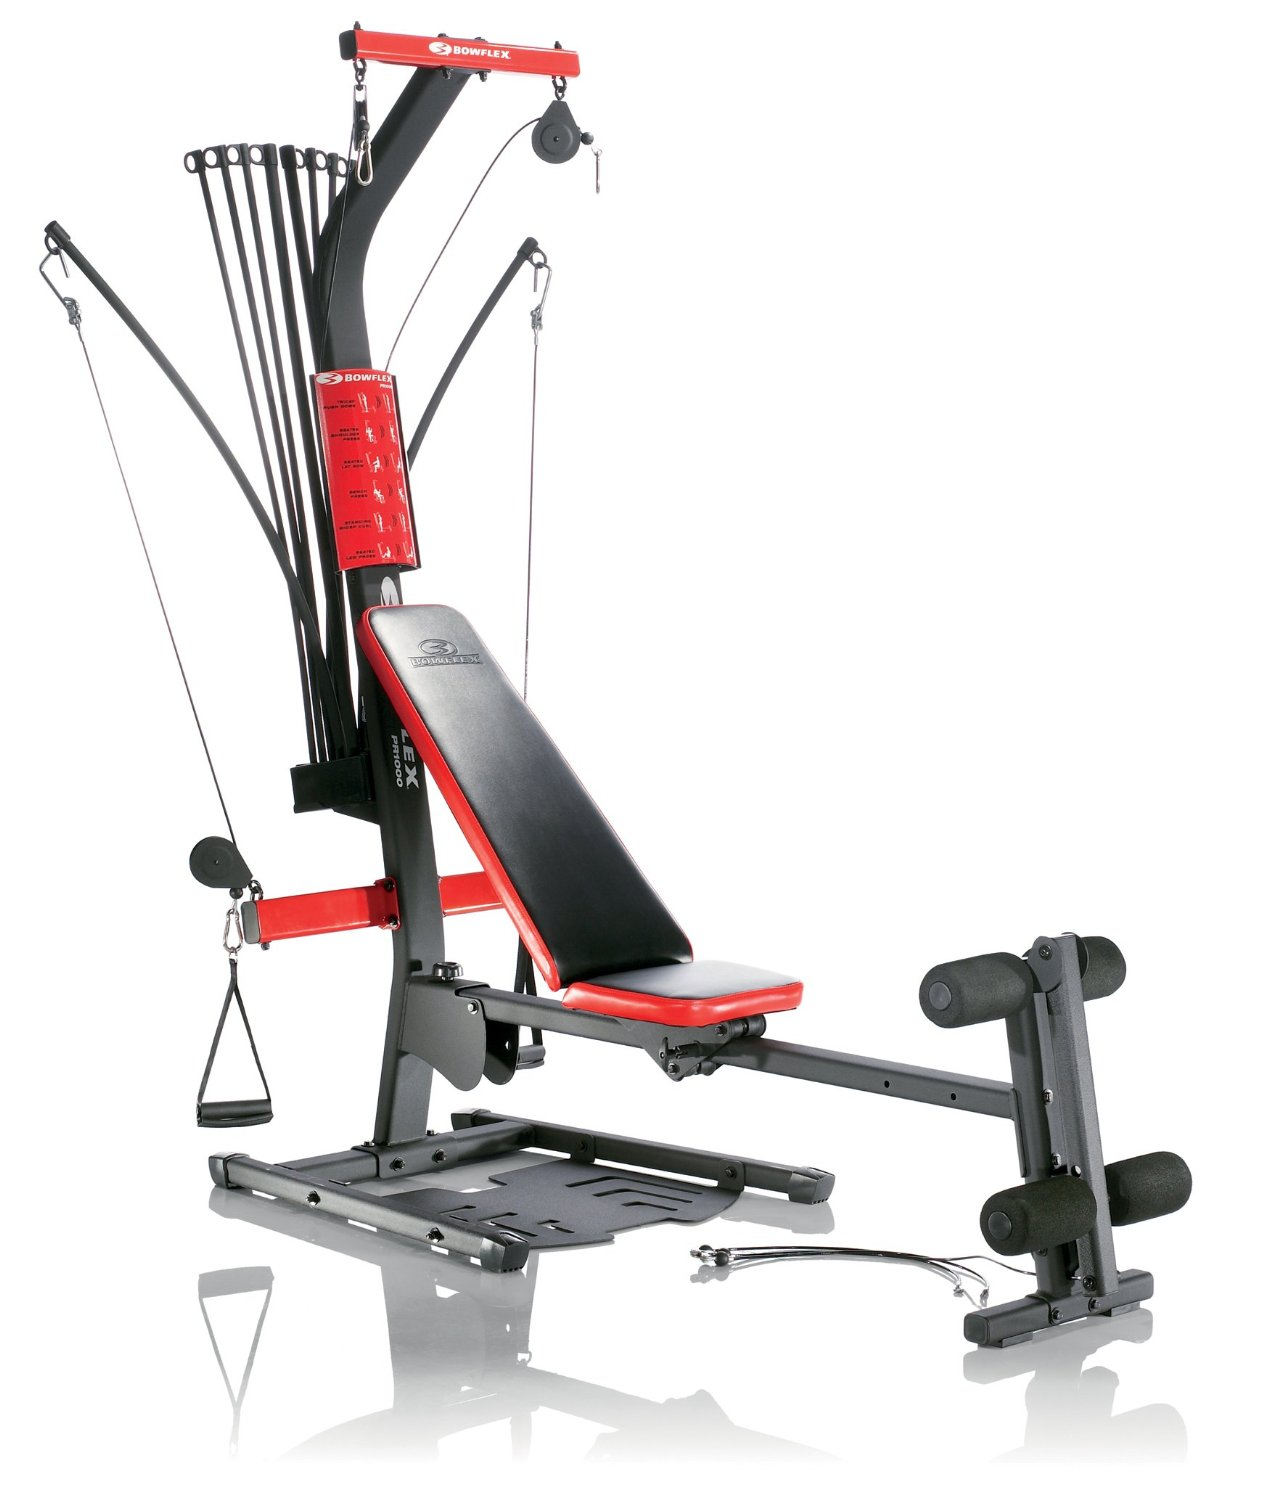 Home Gym Equipment Guide For 2018 What Should You Get